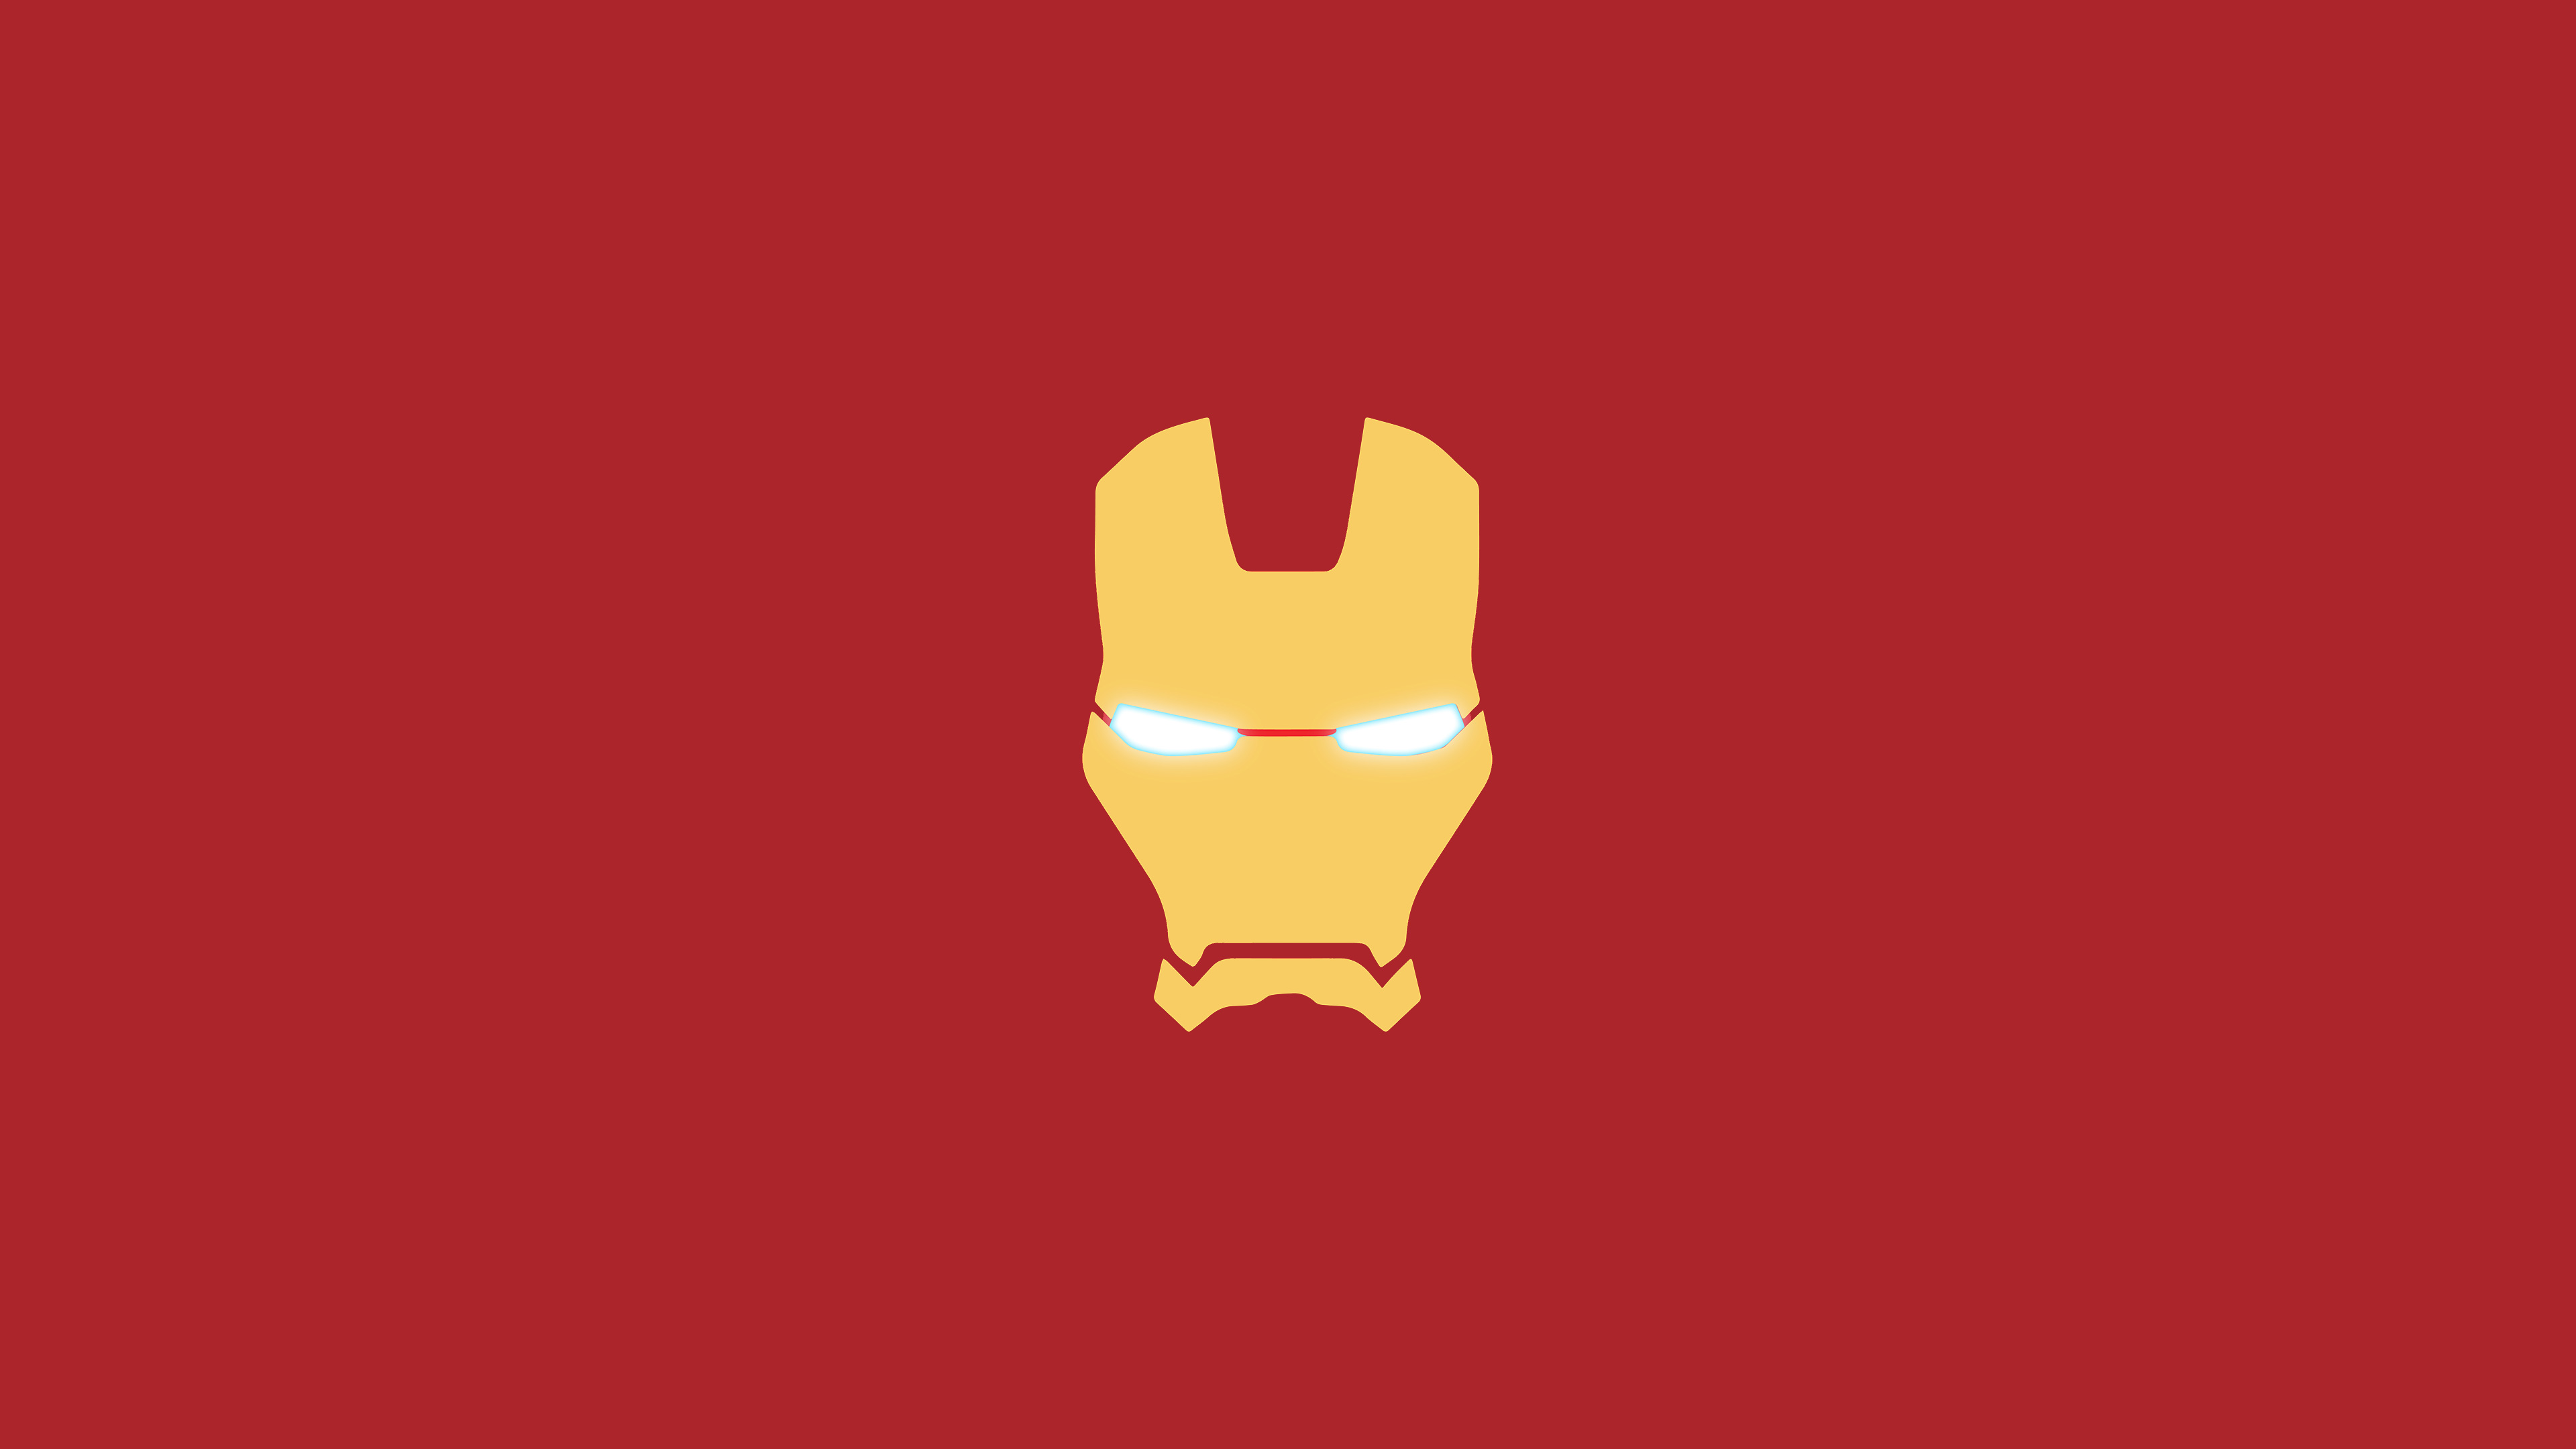 Iron Man Mask Minimal Hd Logo 4k Wallpapers Images Backgrounds